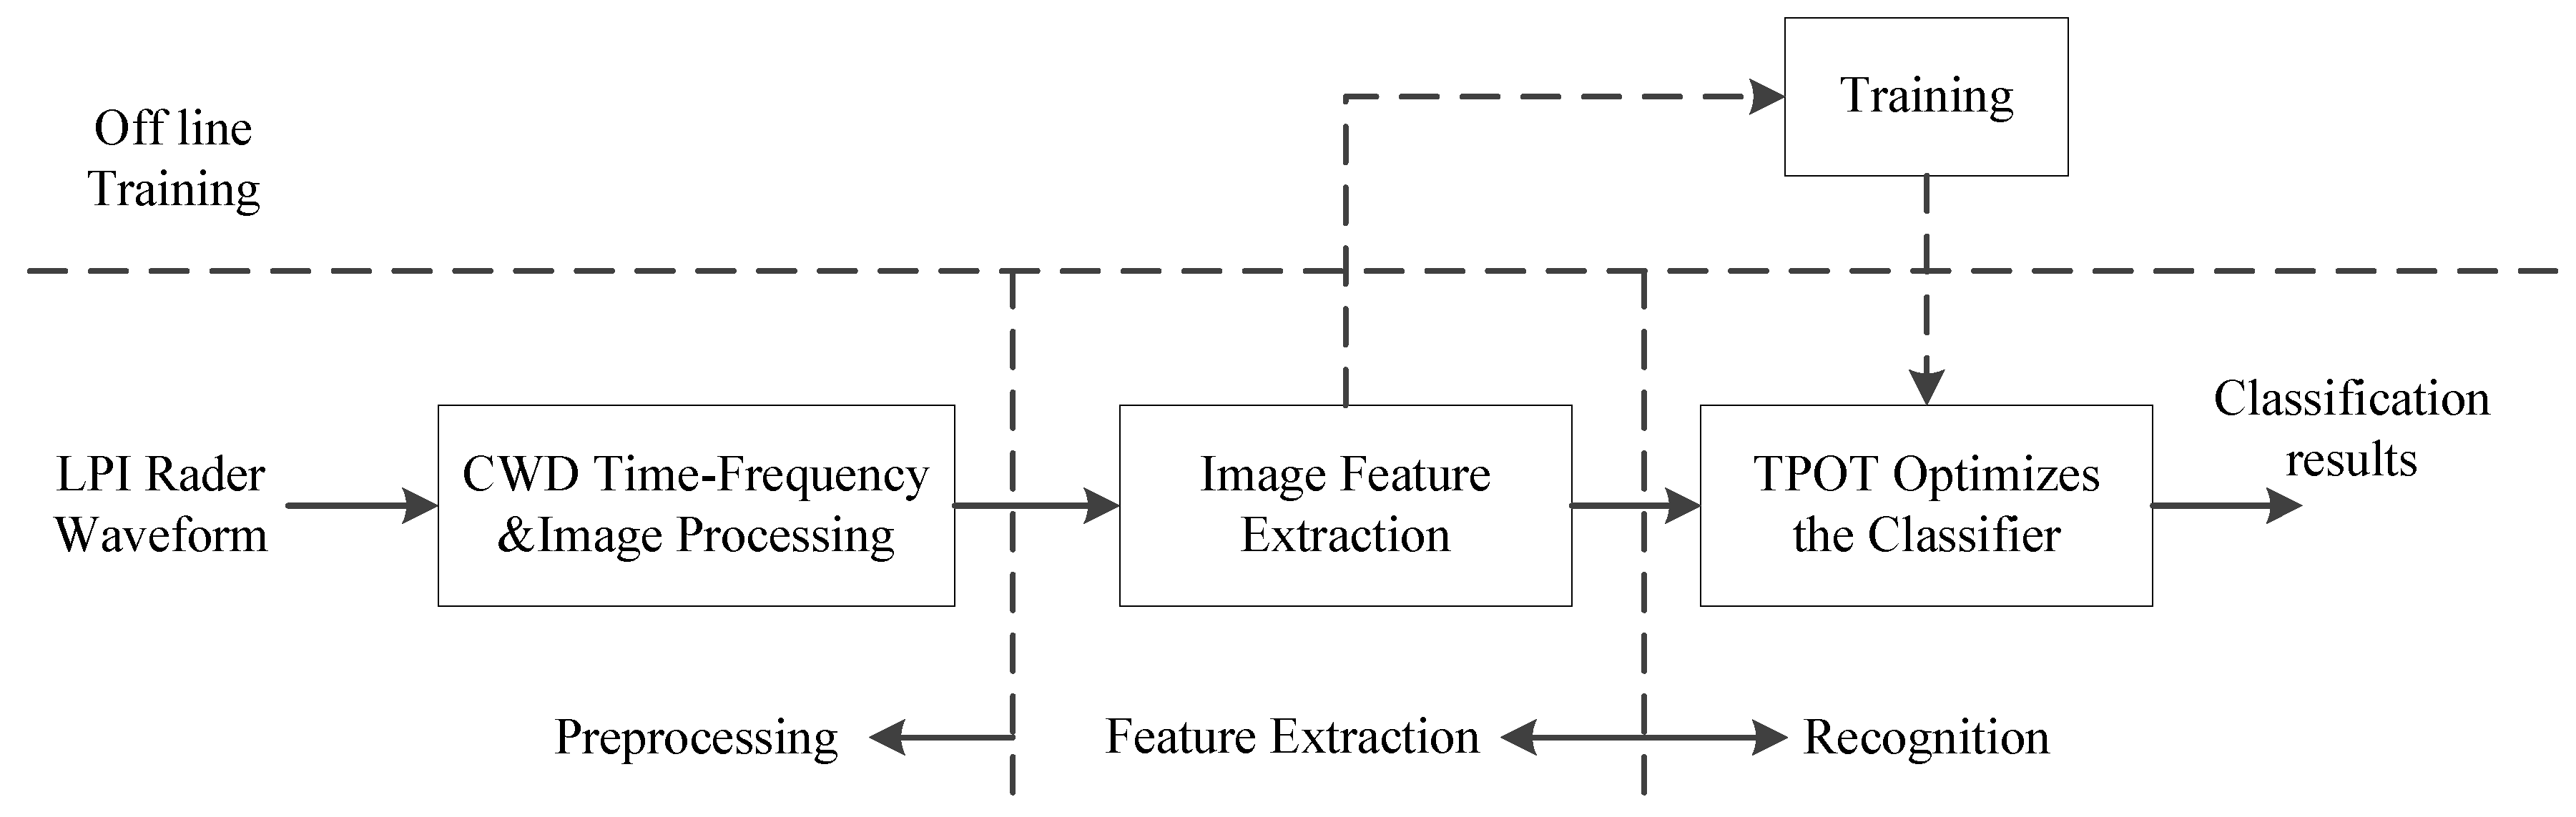 Cnn Code For Image Classification In Matlab